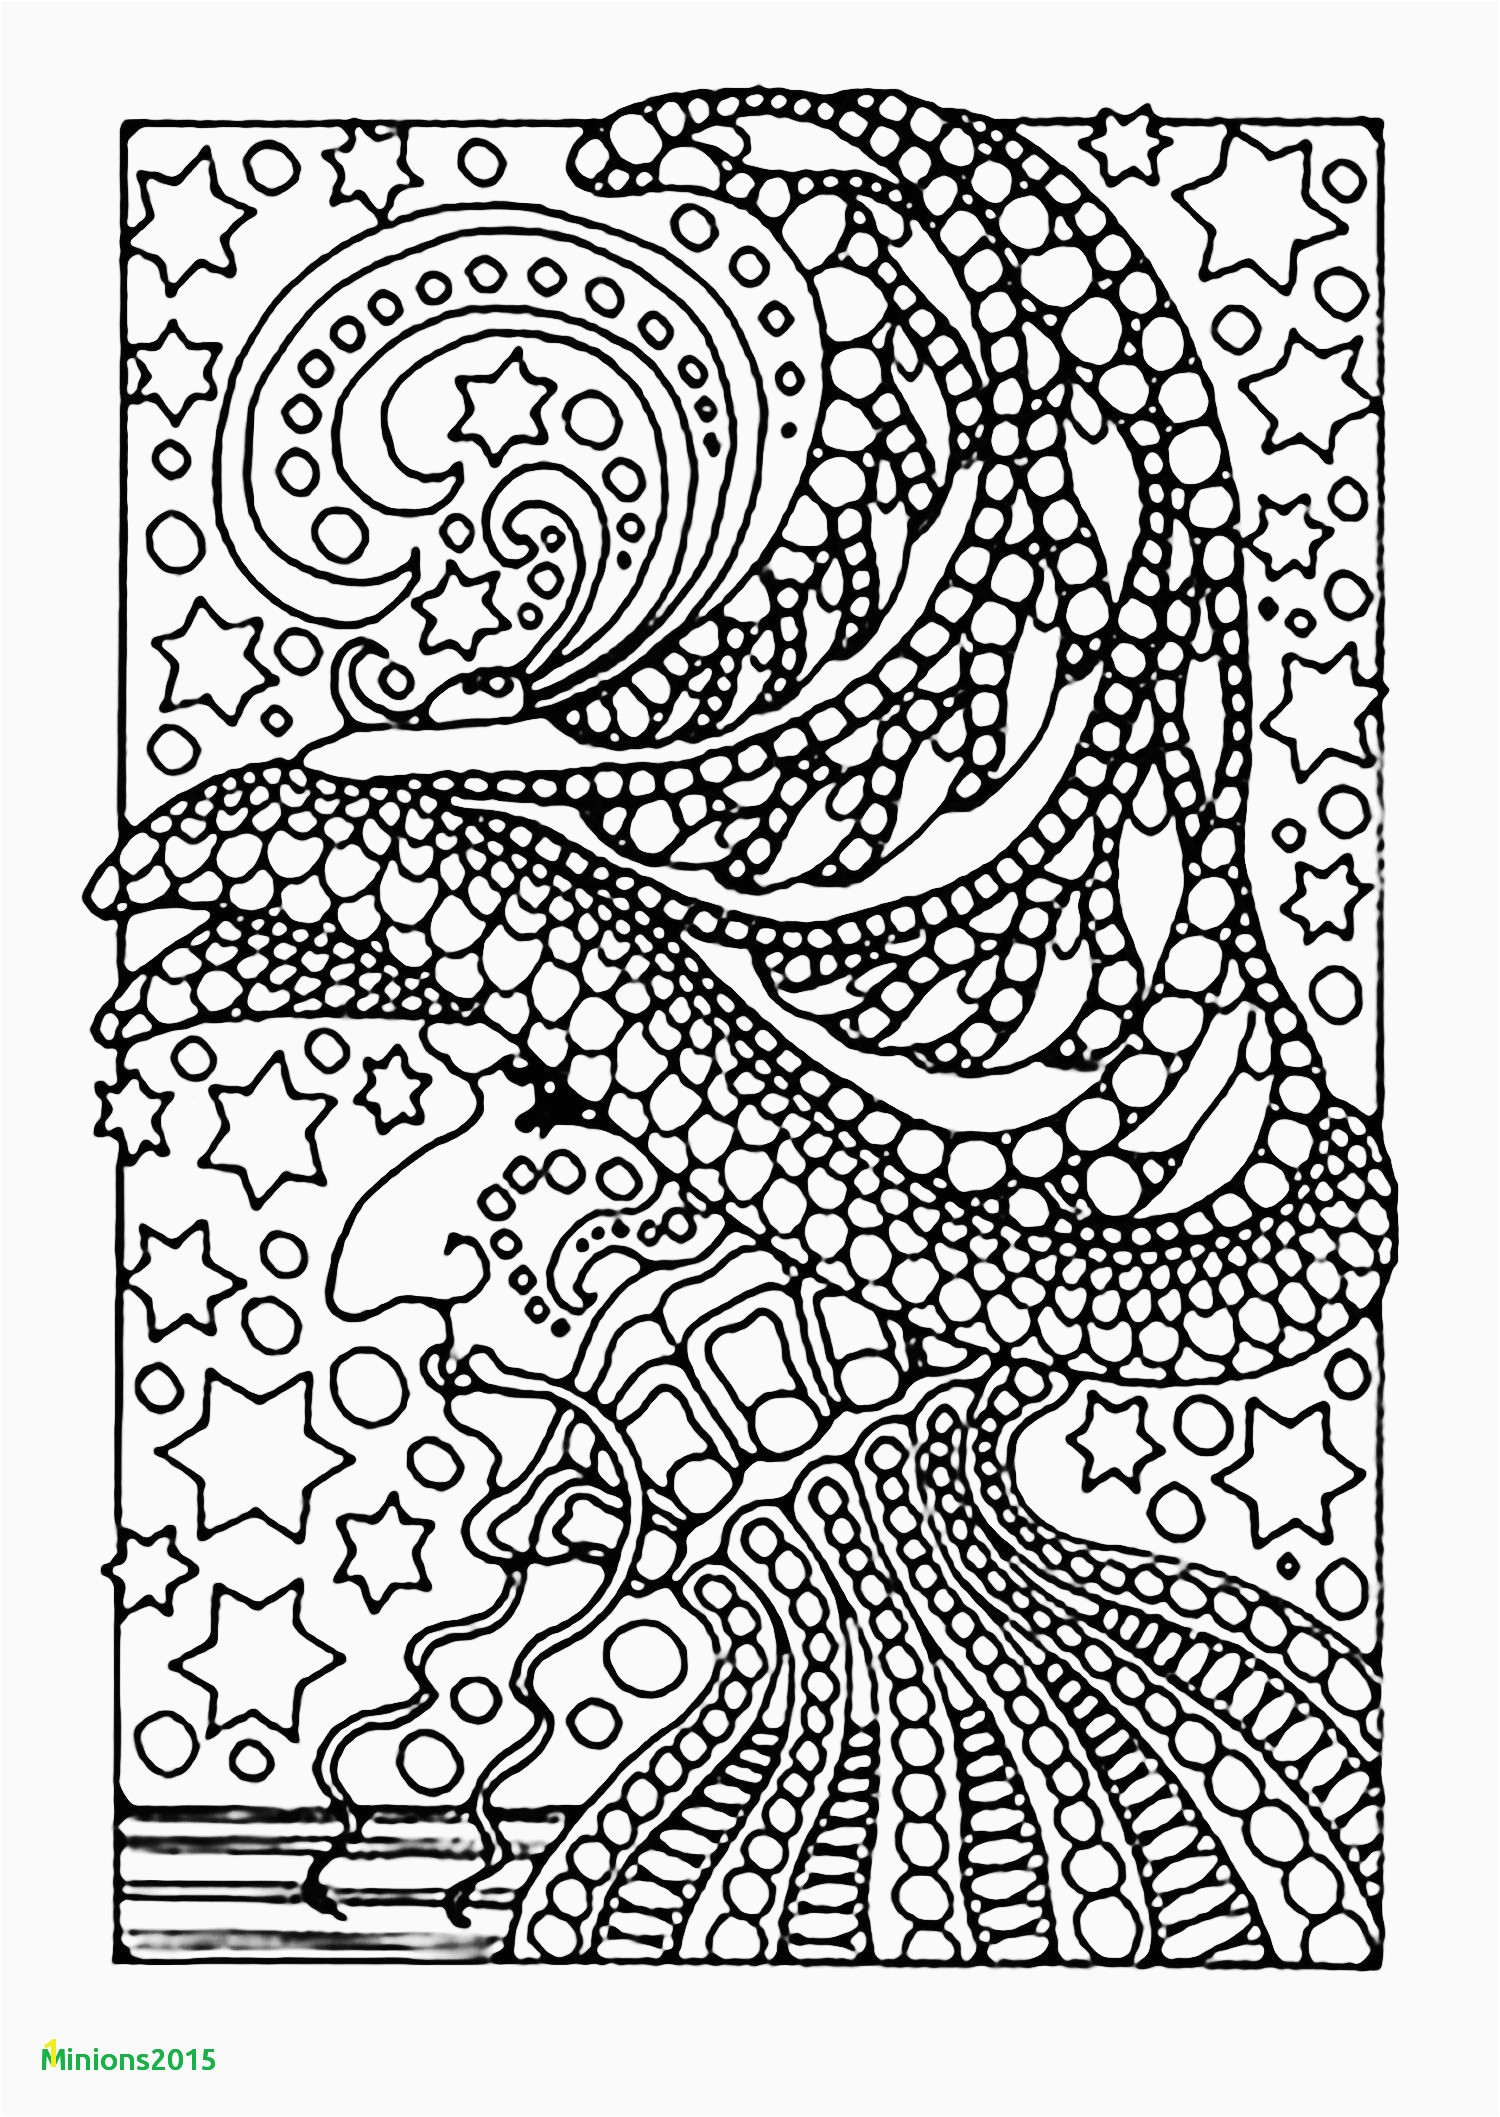 Minions Stuart Drawing Free Cool Coloring Page Unique Witch Coloring Pages New Crayola Pages 0d